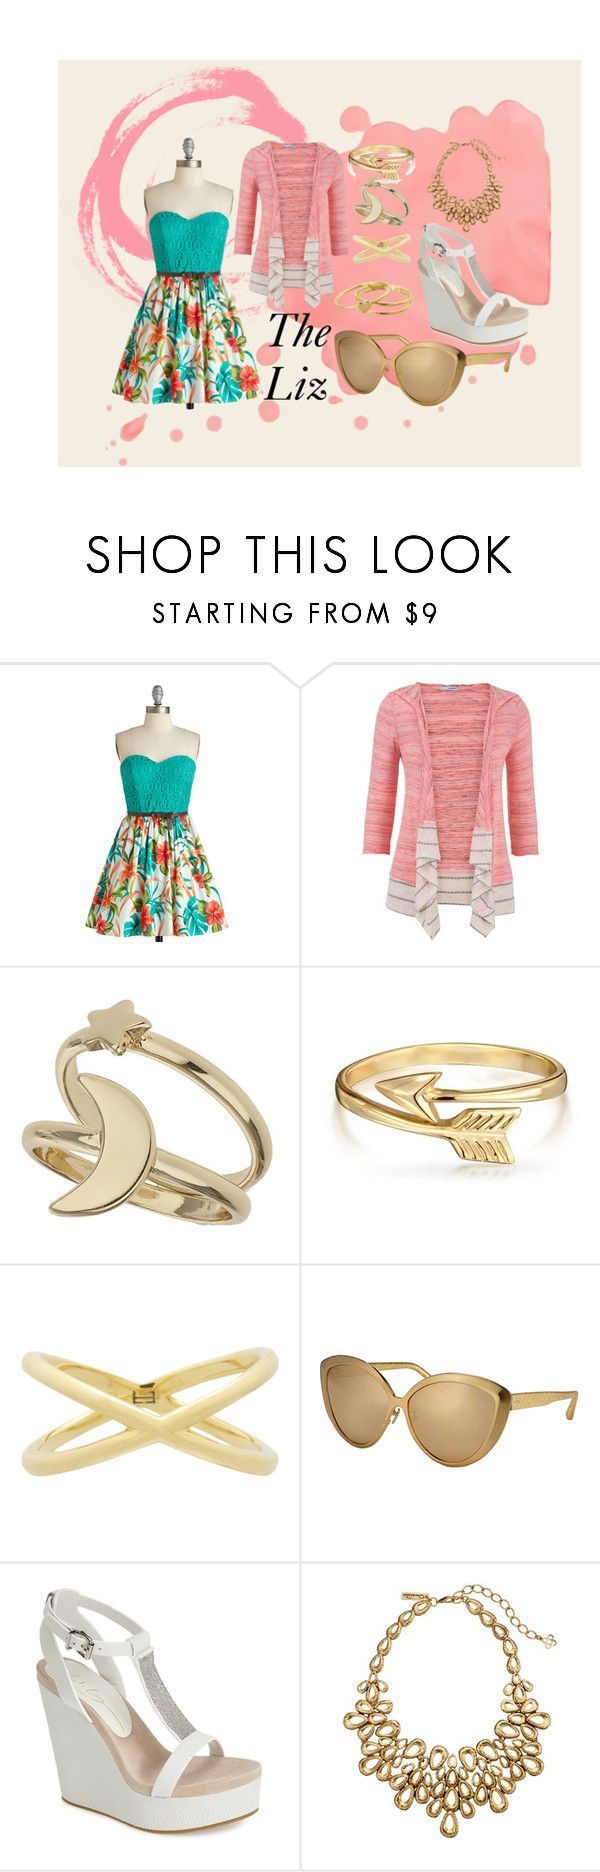 """Untitled #19"" by anonymousleaf ❤ liked on Polyvore featuring maurices, Miss Selfridge, Bling Jewelry, Eva Fehren, Linda Farrow, Lola Cruz, Oscar de la Renta and Gorjana"